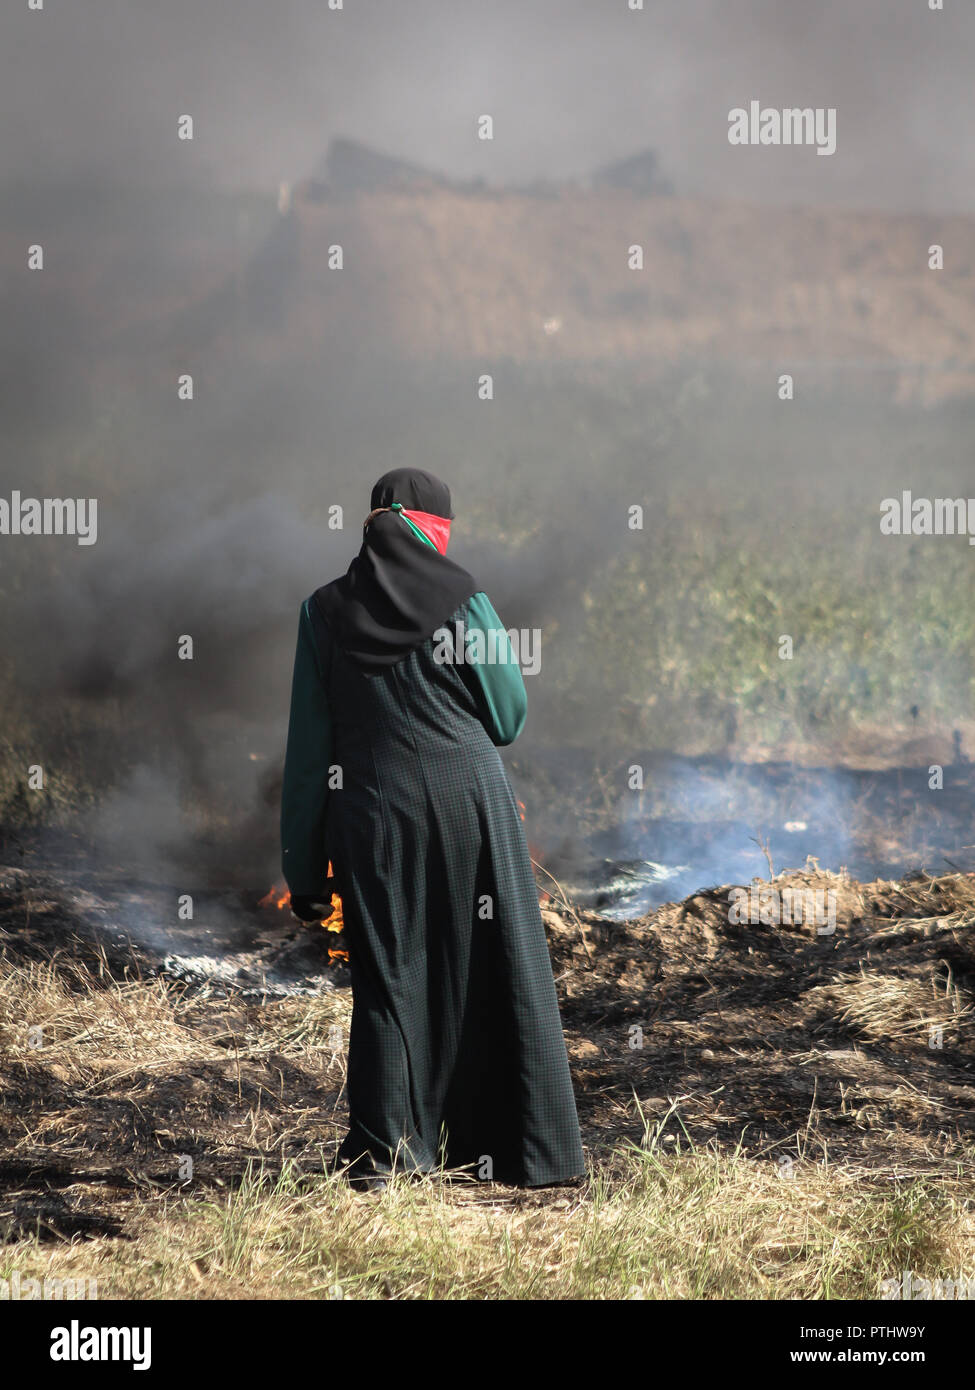 A Palestinian girl in front of Israeli soldiers on the Israel-Gaza border during a tent city protest demanding the right to return to their homeland. - Stock Image